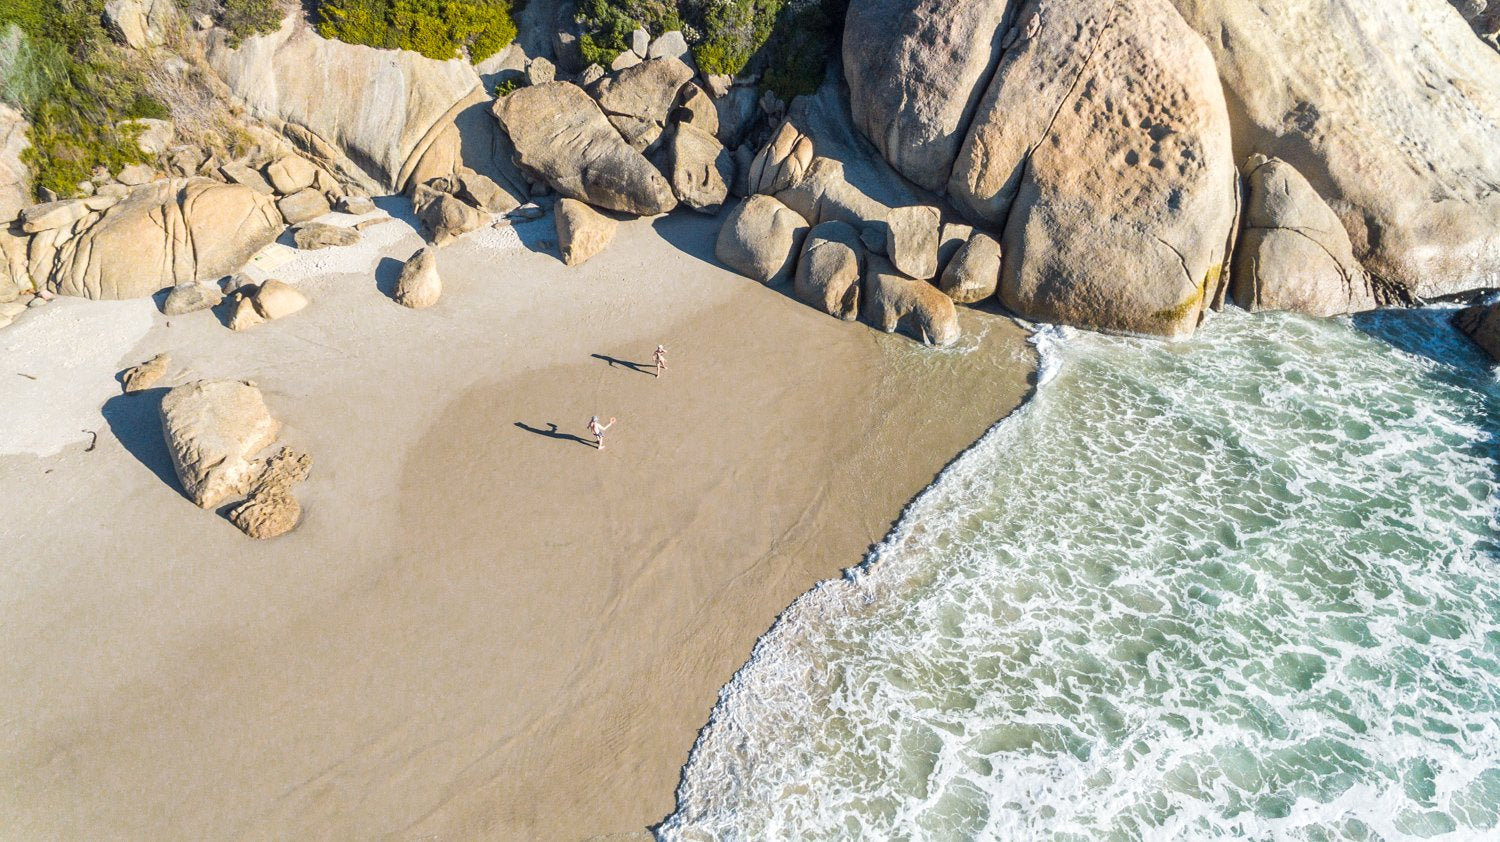 Two people playing beach bats on Llandudno Beach in Cape Town from an aerial perspective